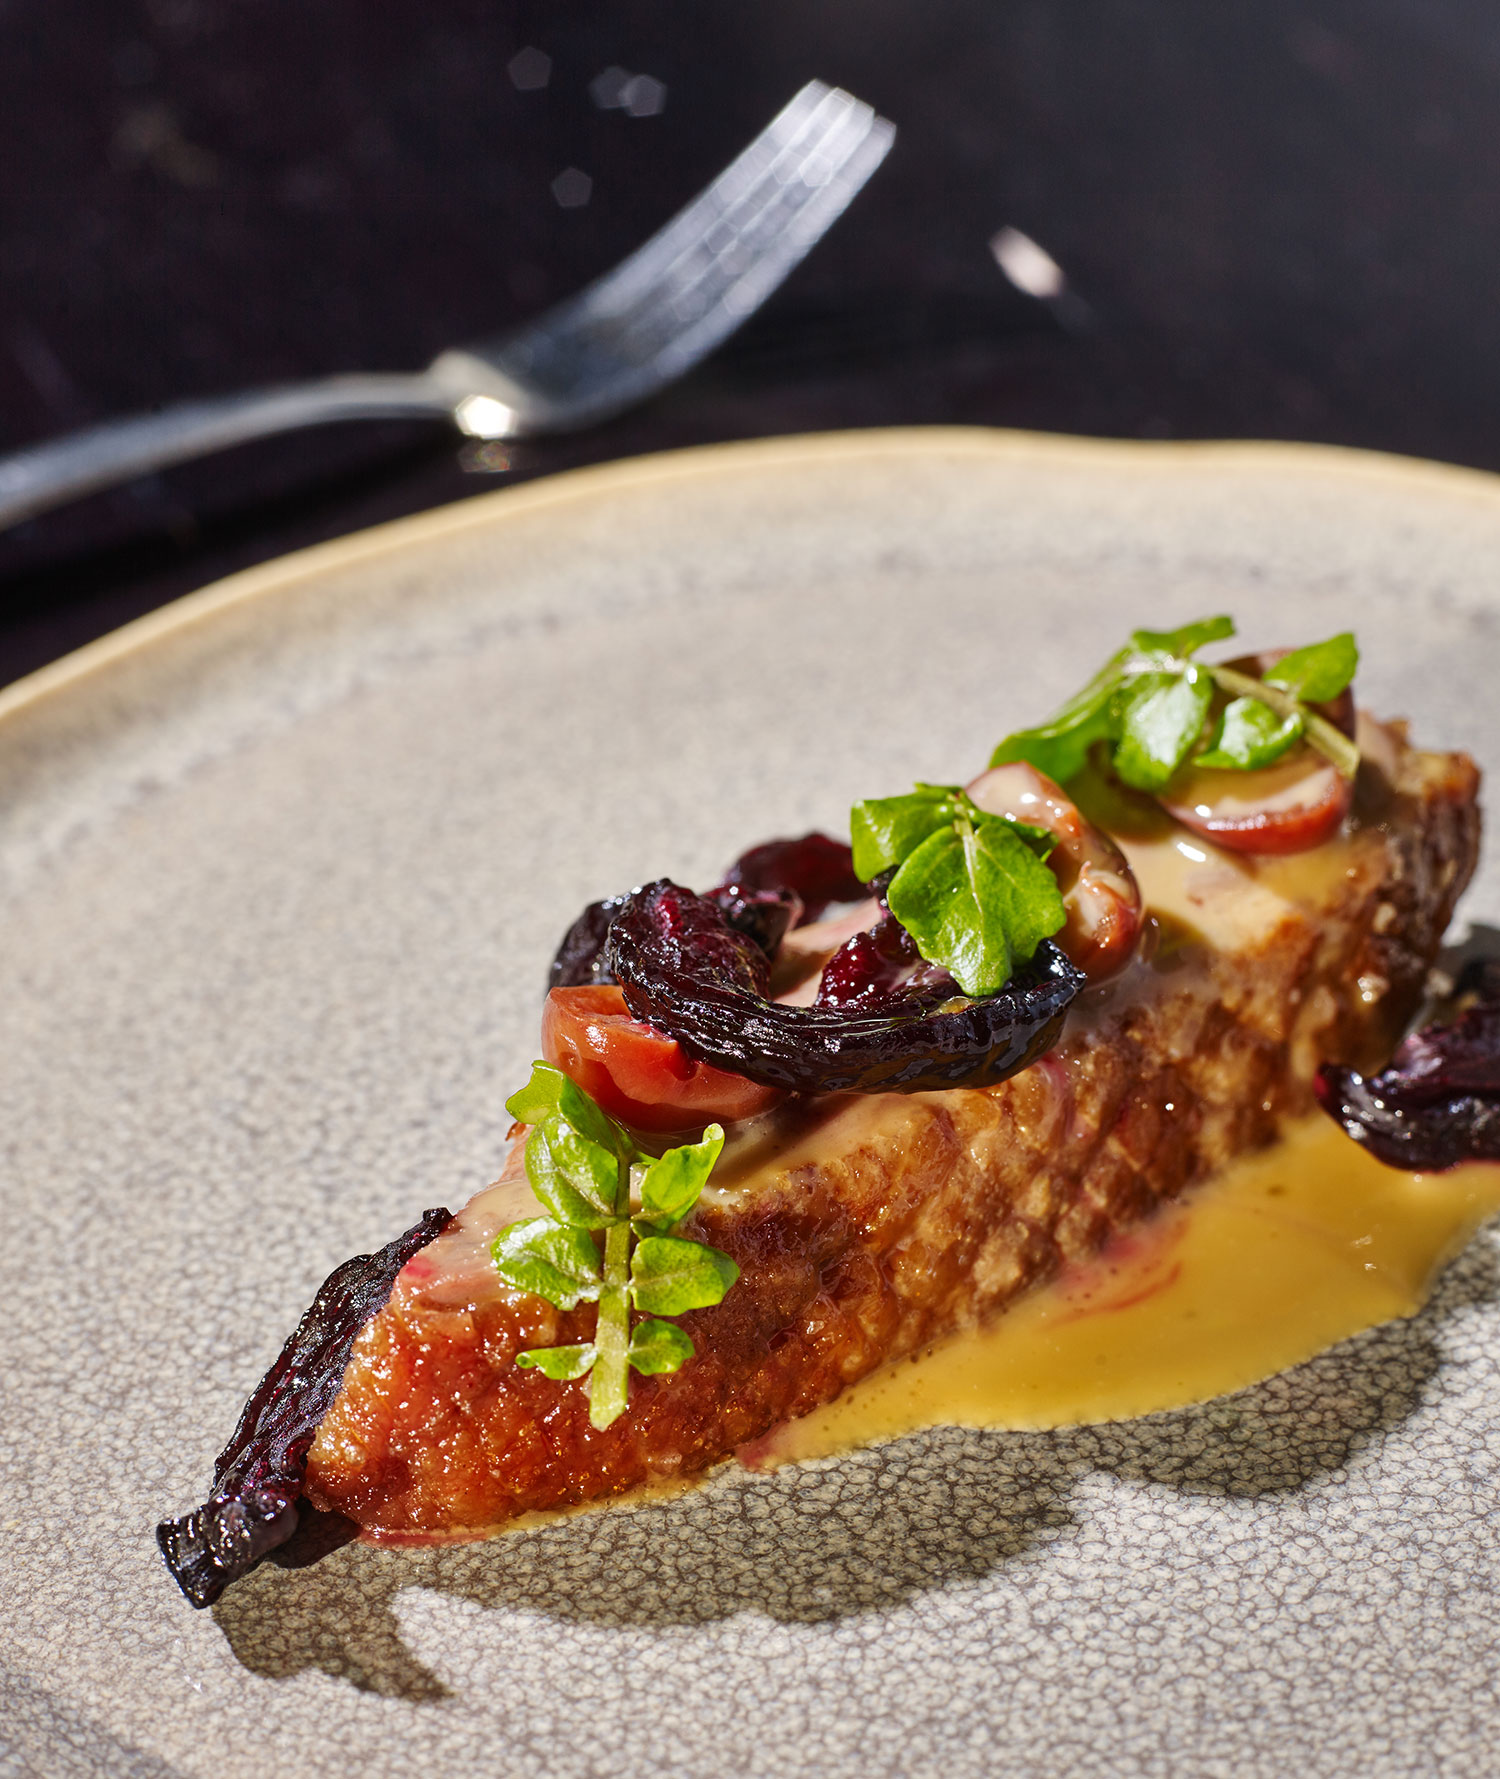 Maremma duck-roasted breast, brown rice congee